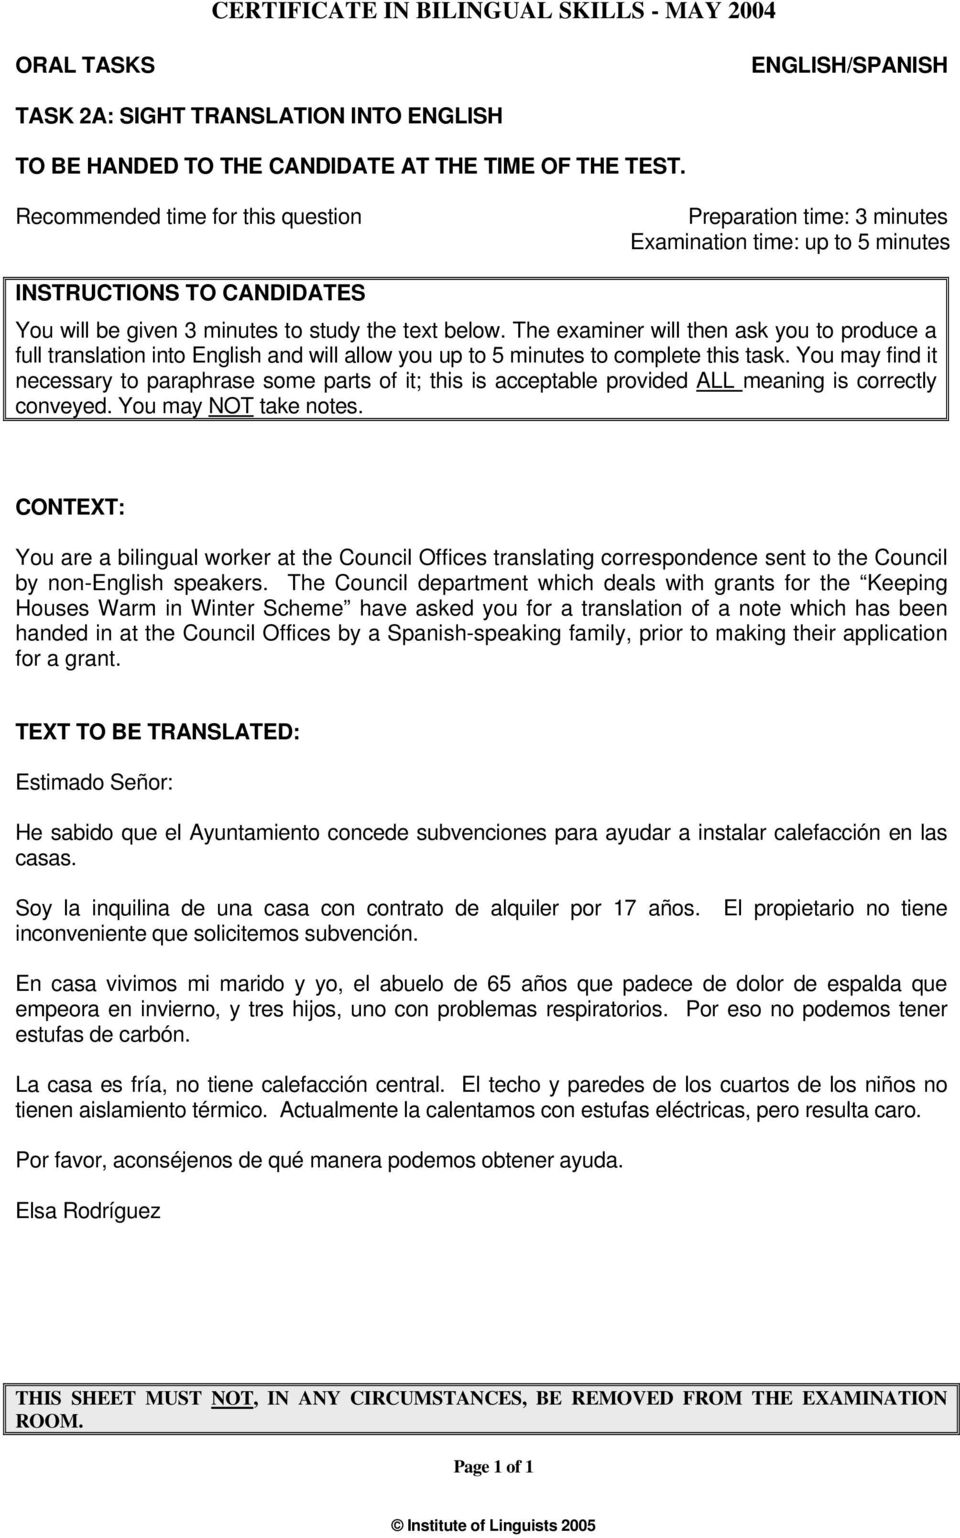 The examiner will then ask you to produce a full translation into English and will allow you up to 5 minutes to complete this task.